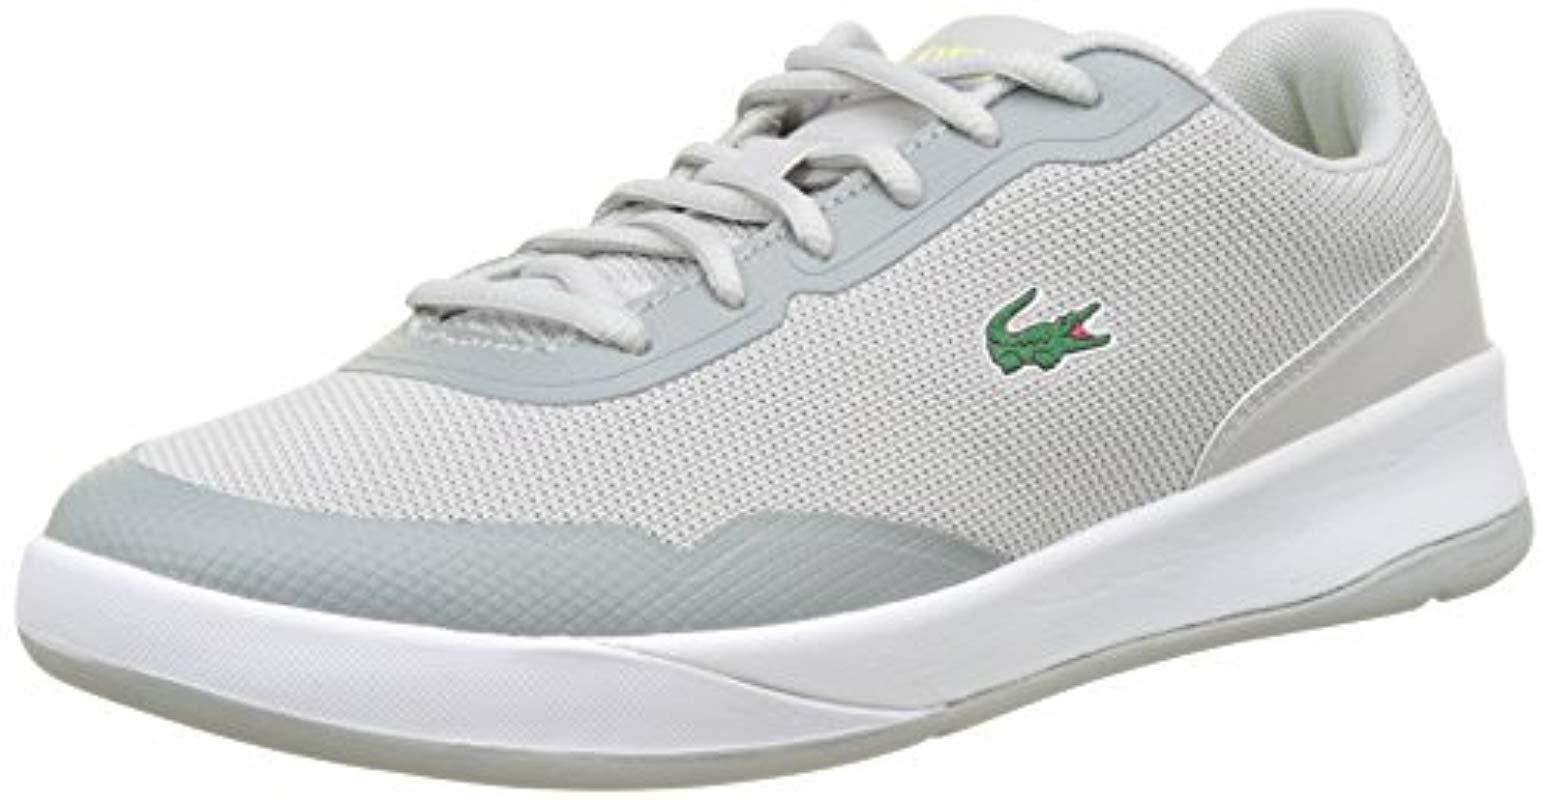 reputable site b0952 debe2 lacoste-Grey-Gry-s-Lt-Spirit-117-1-Spw-Blk-Low.jpeg